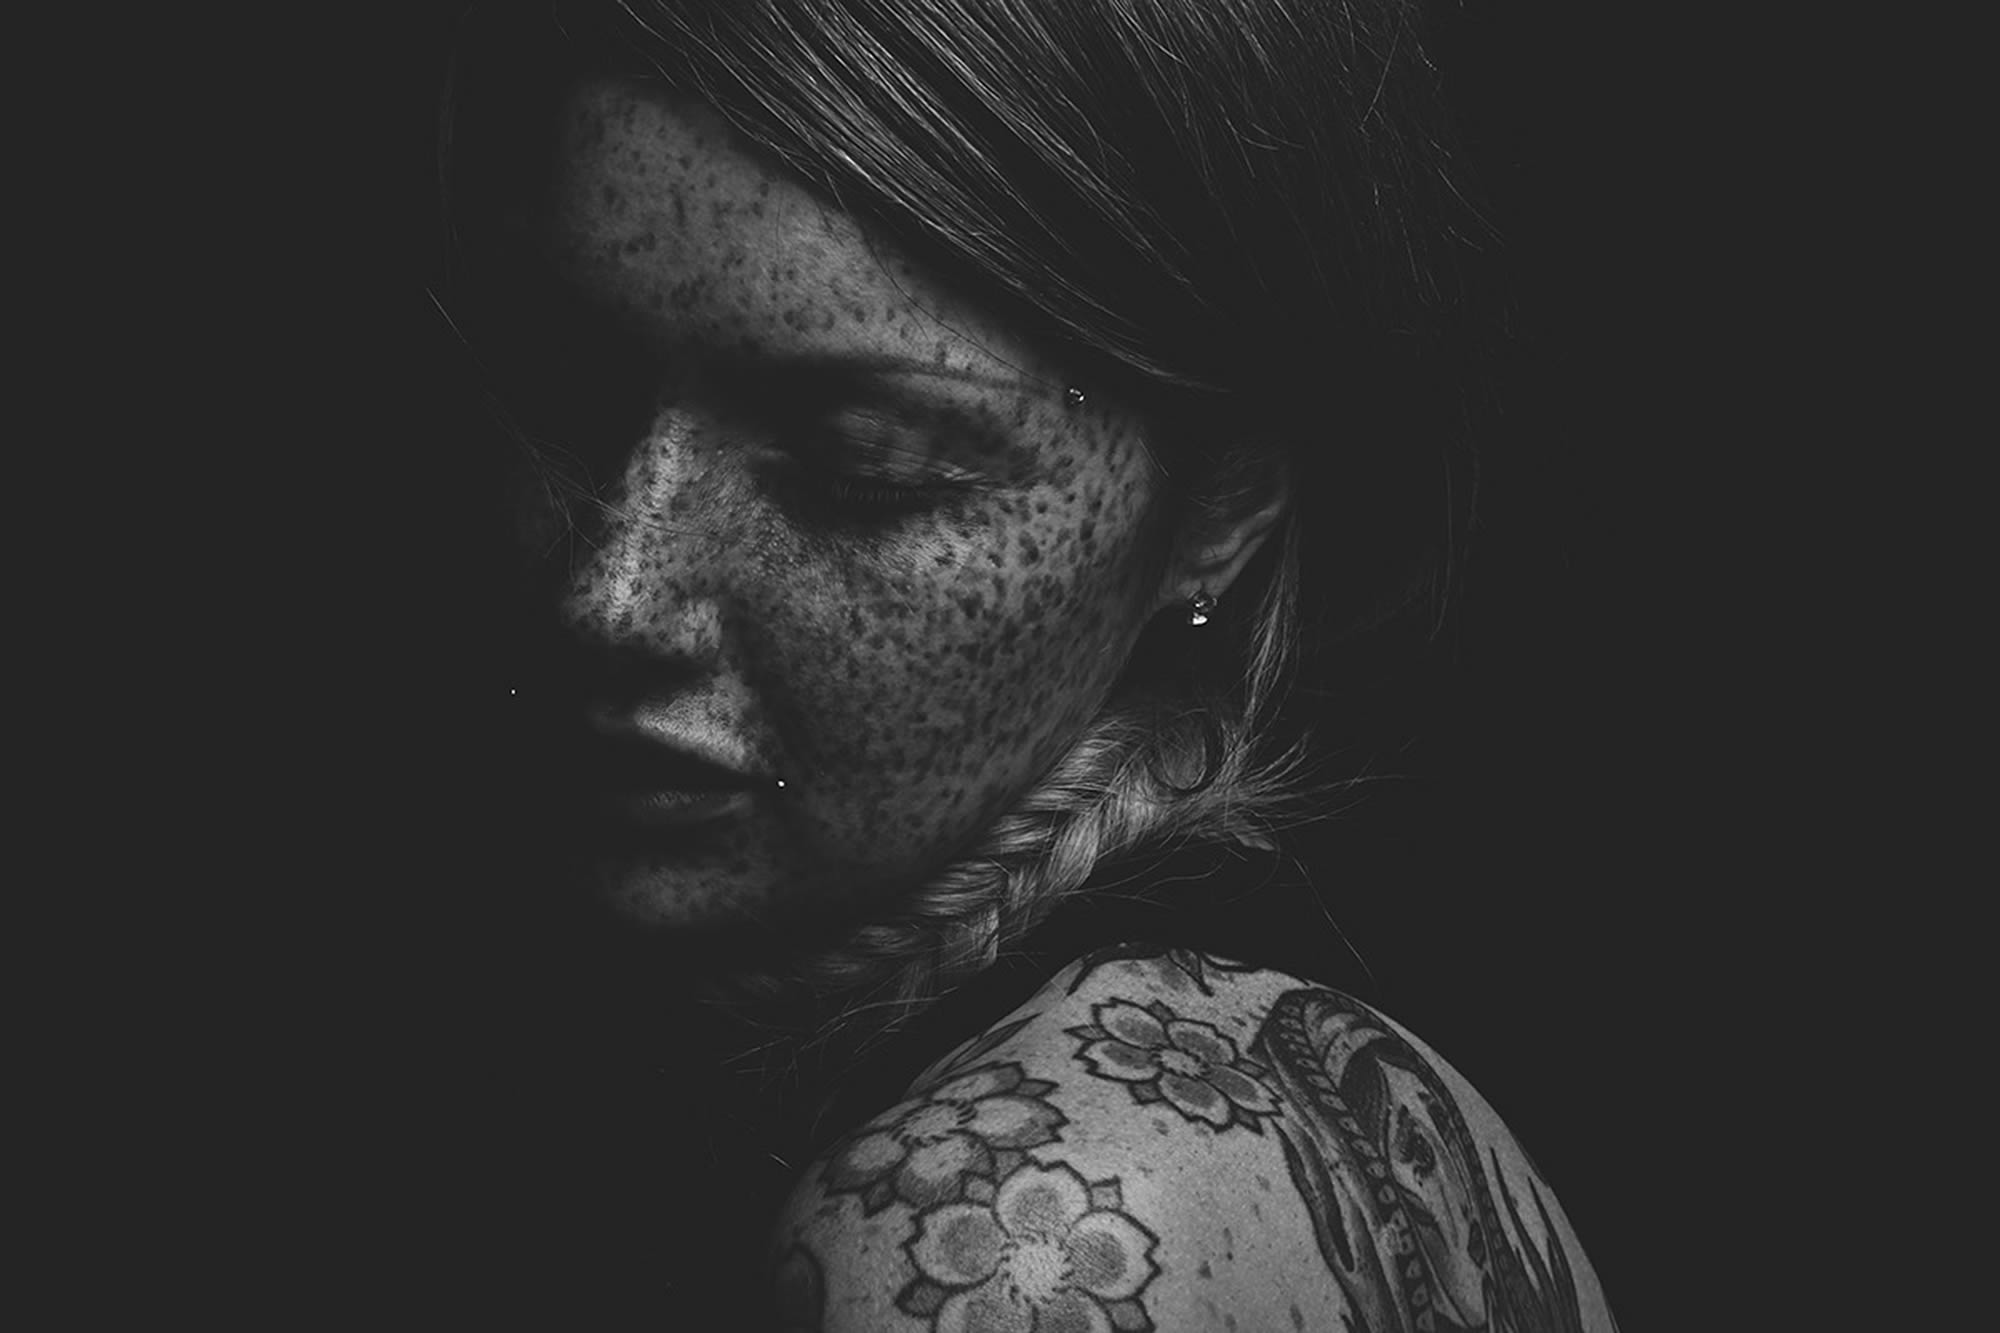 freckled face girl. tattooed body